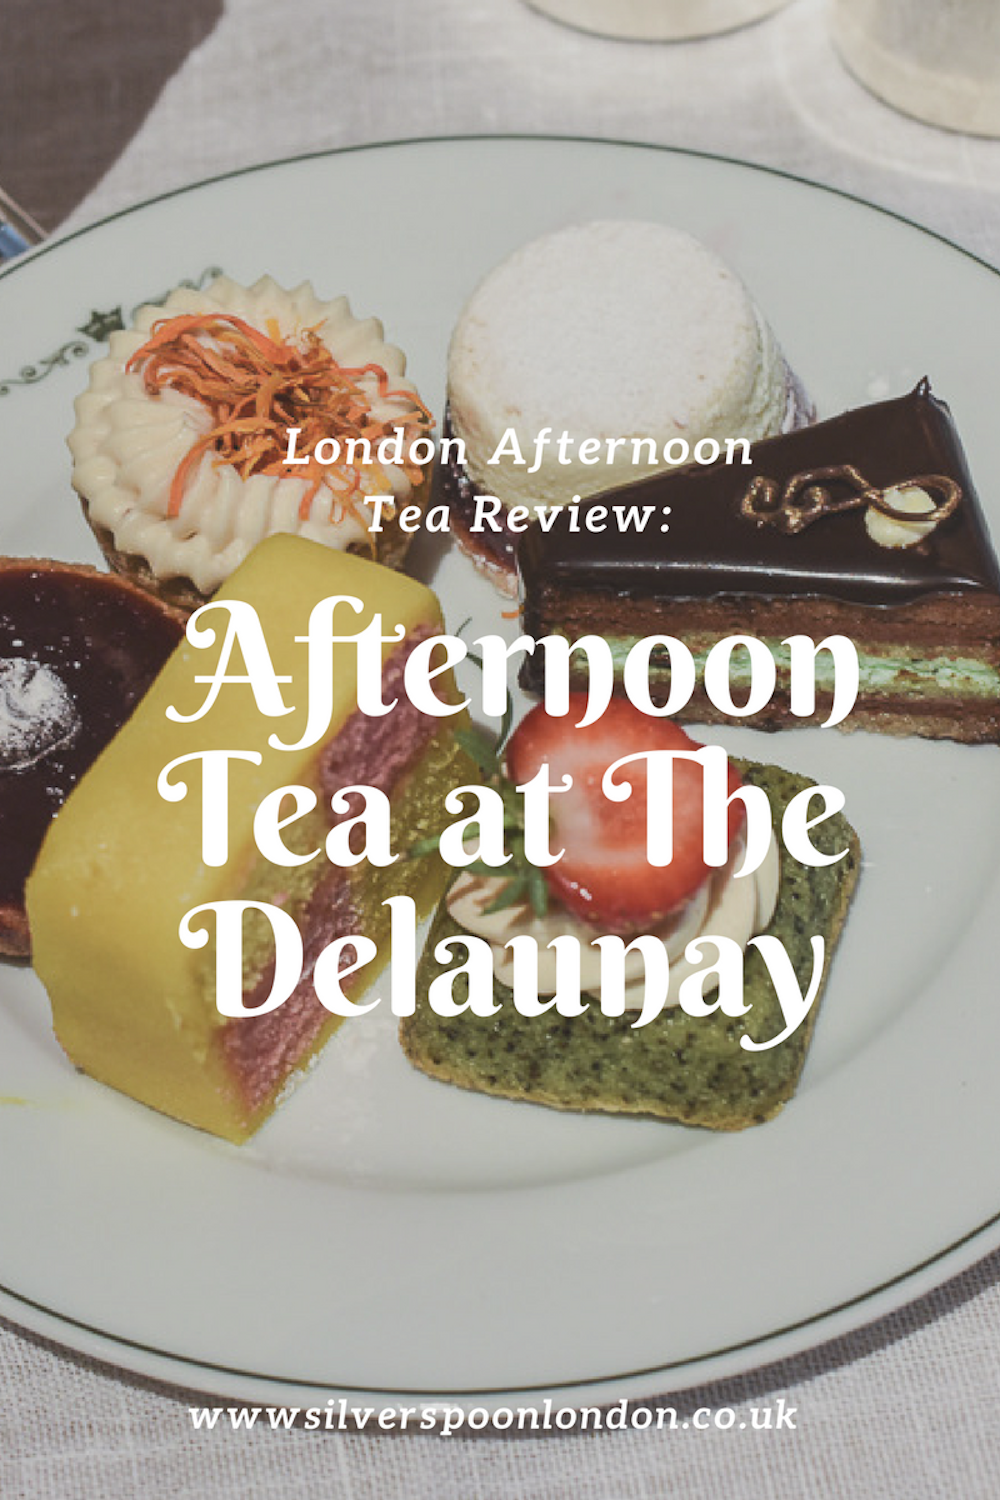 Afternoon Tea at The Delaunay